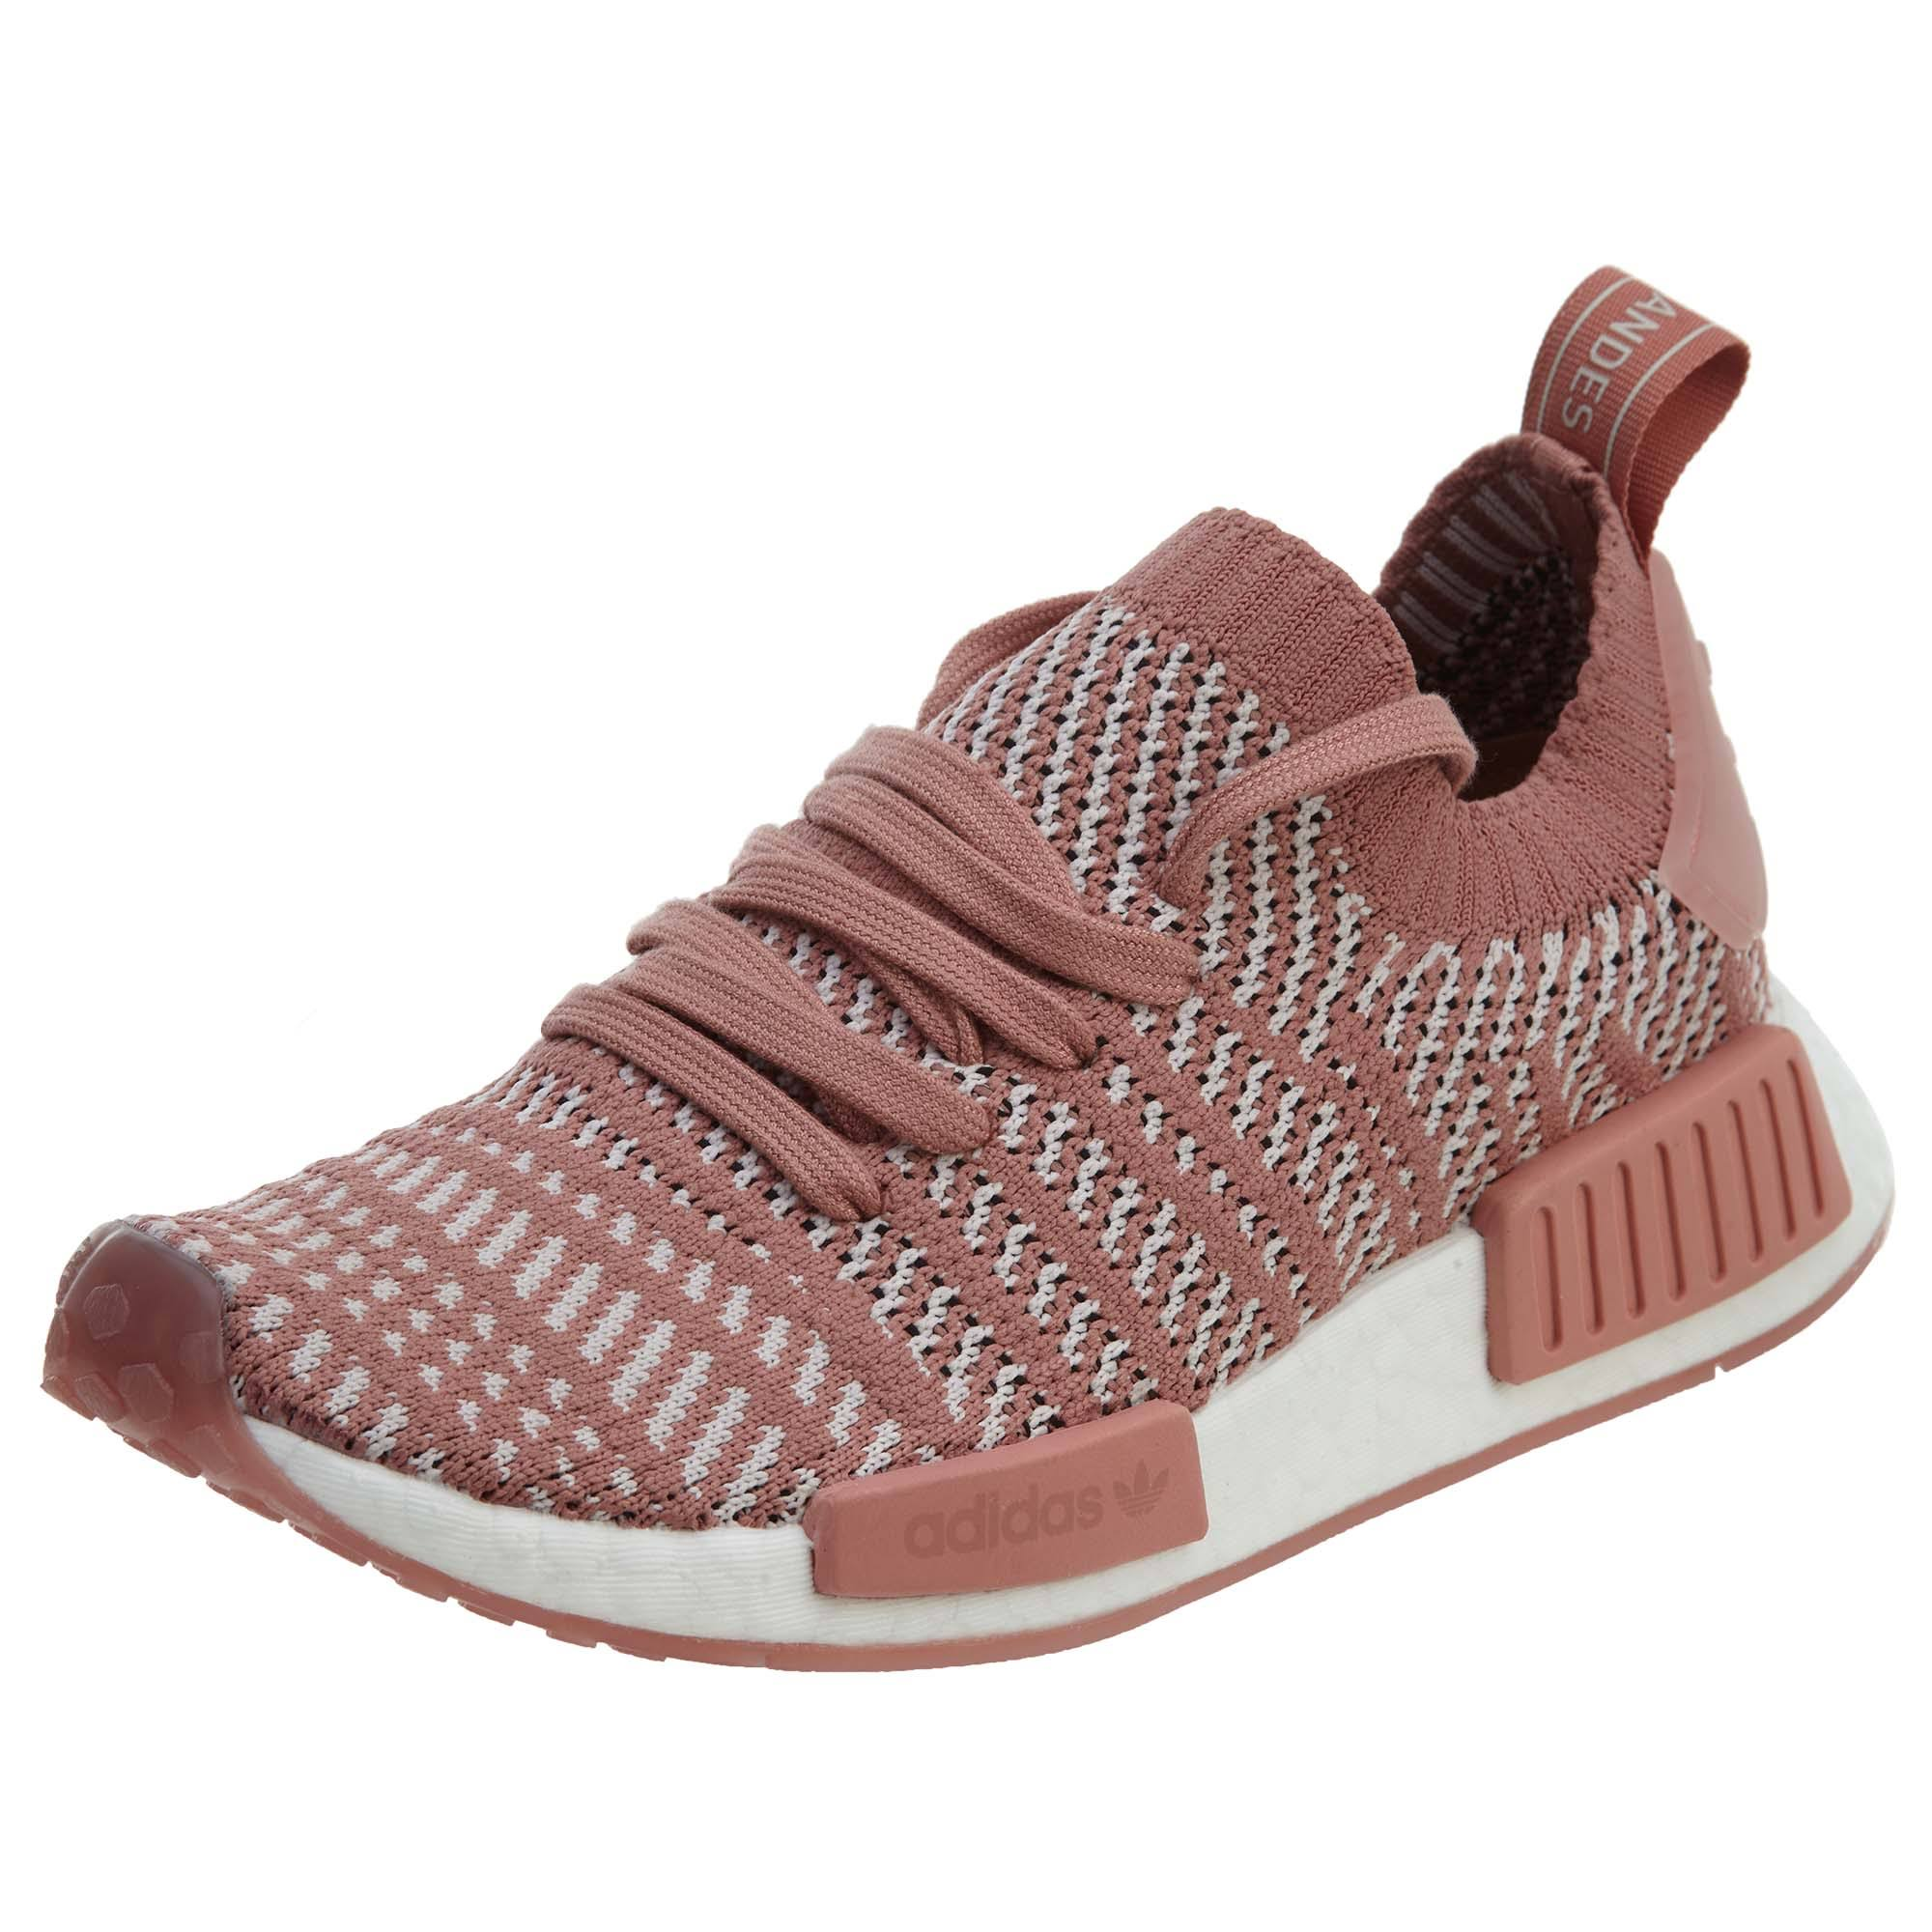 Style Ash Tint Nmd r1 Orchid pink Wht white Cq2028 Pk Stlt Adidas Pink Womens BR7f7c